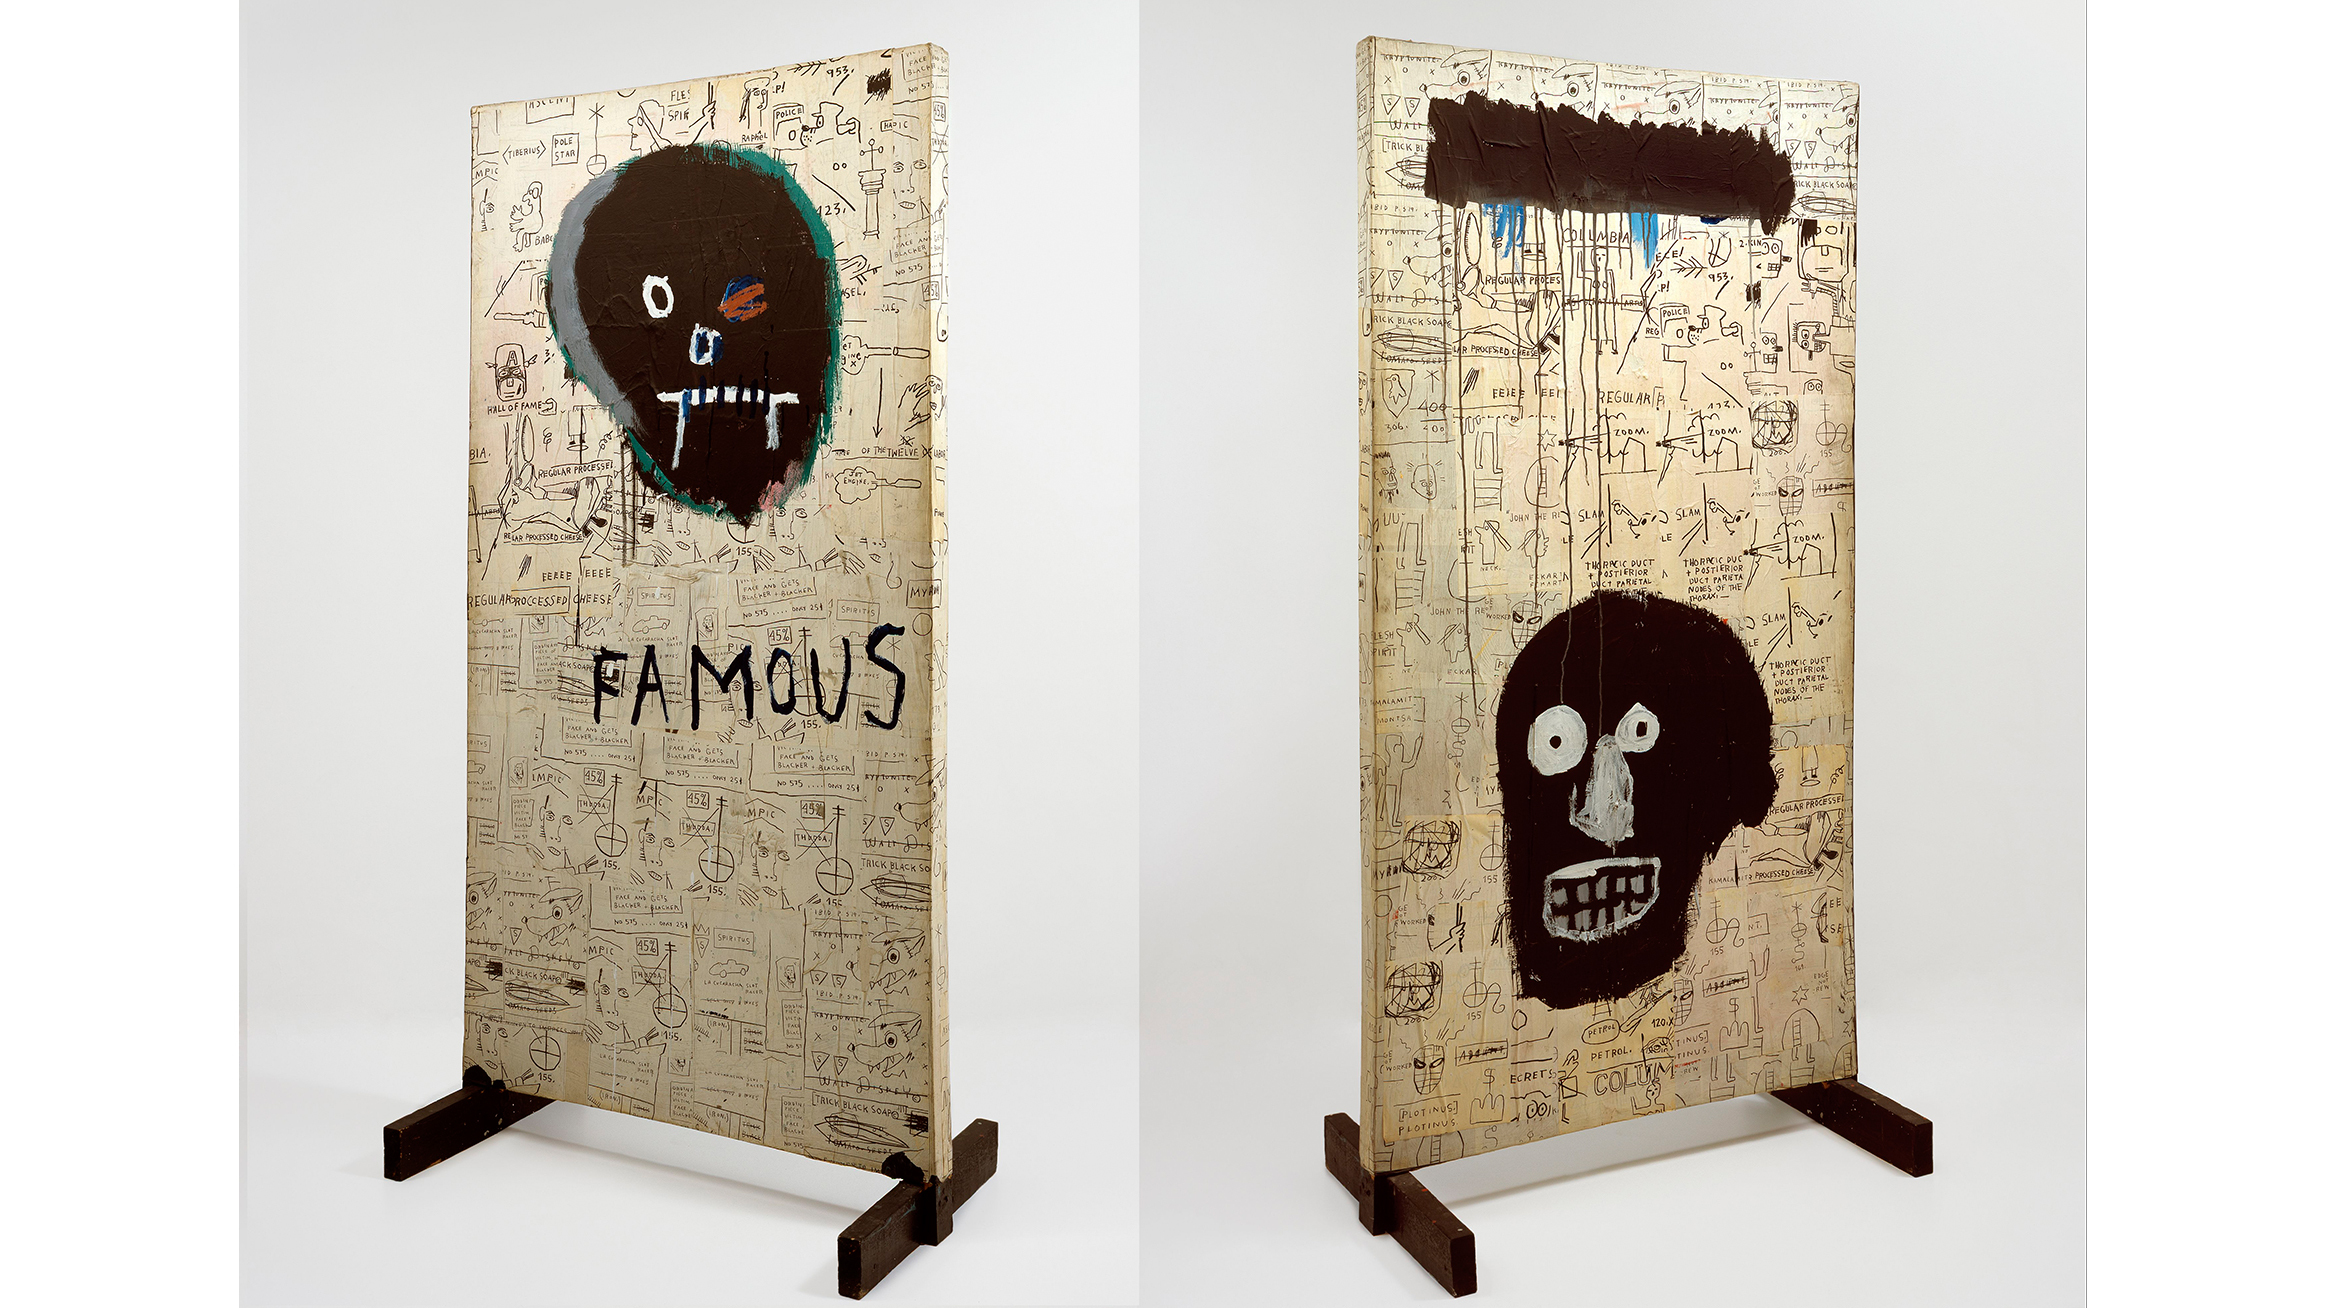 Jean-Michel Basquiat (American, 1960–1988). Famous (recto and verso), 1982. Acrylic and Xerox collage on canvas mounted on wood, 72 3/4 x 39 1/8 x 21 1/2 in. (184.8 x 99.4 x 54.6 cm).